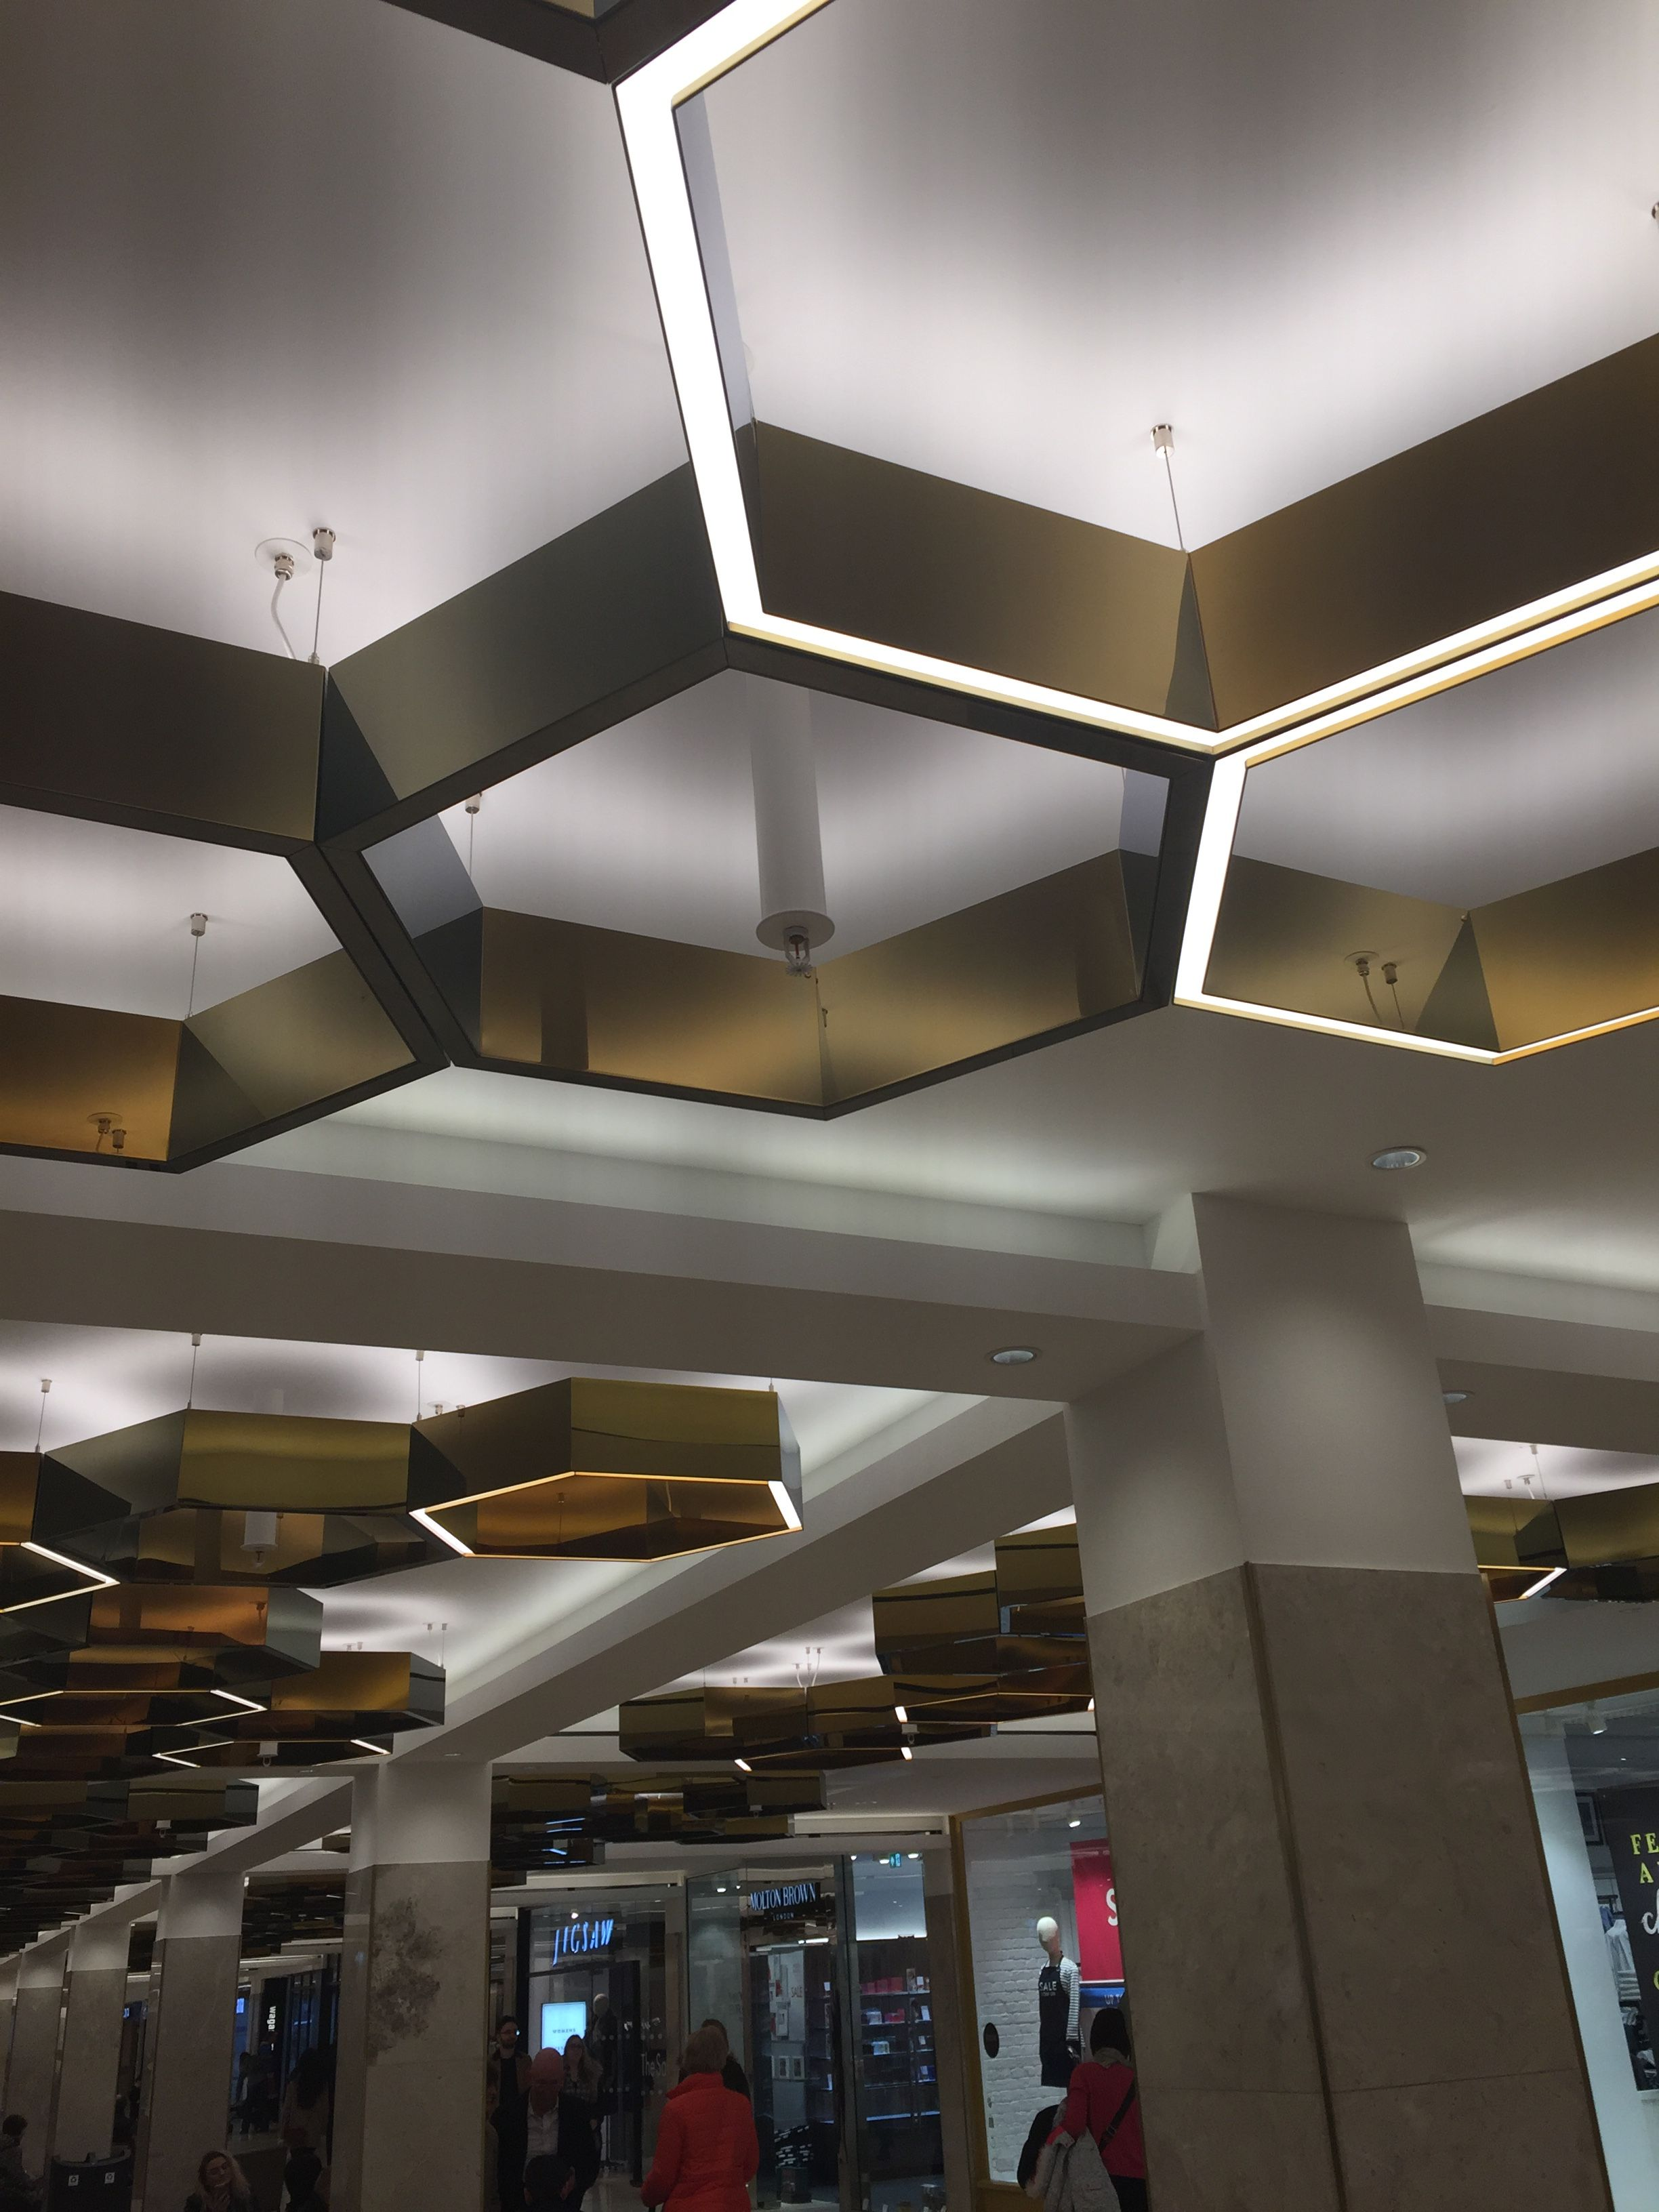 Lighting Shops Brisbane Ceiling Tech In 2019 Ceiling Design Hotel Ceiling Interior